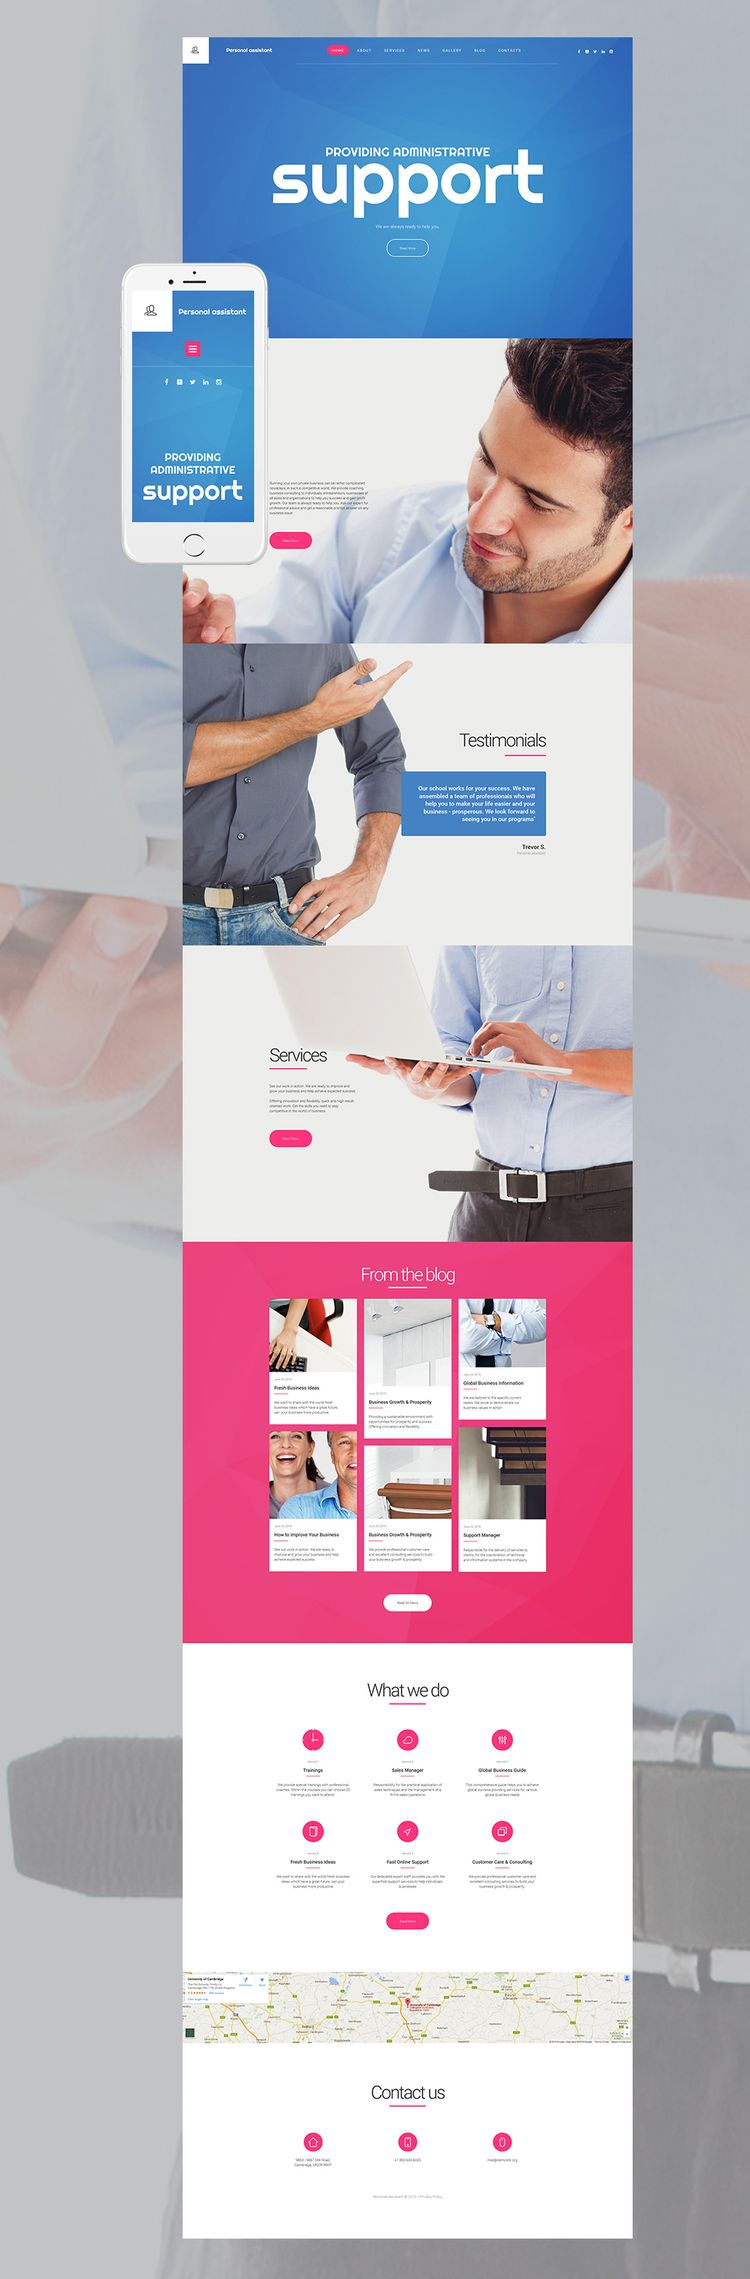 Personal Assistant Website Template For Business Sites